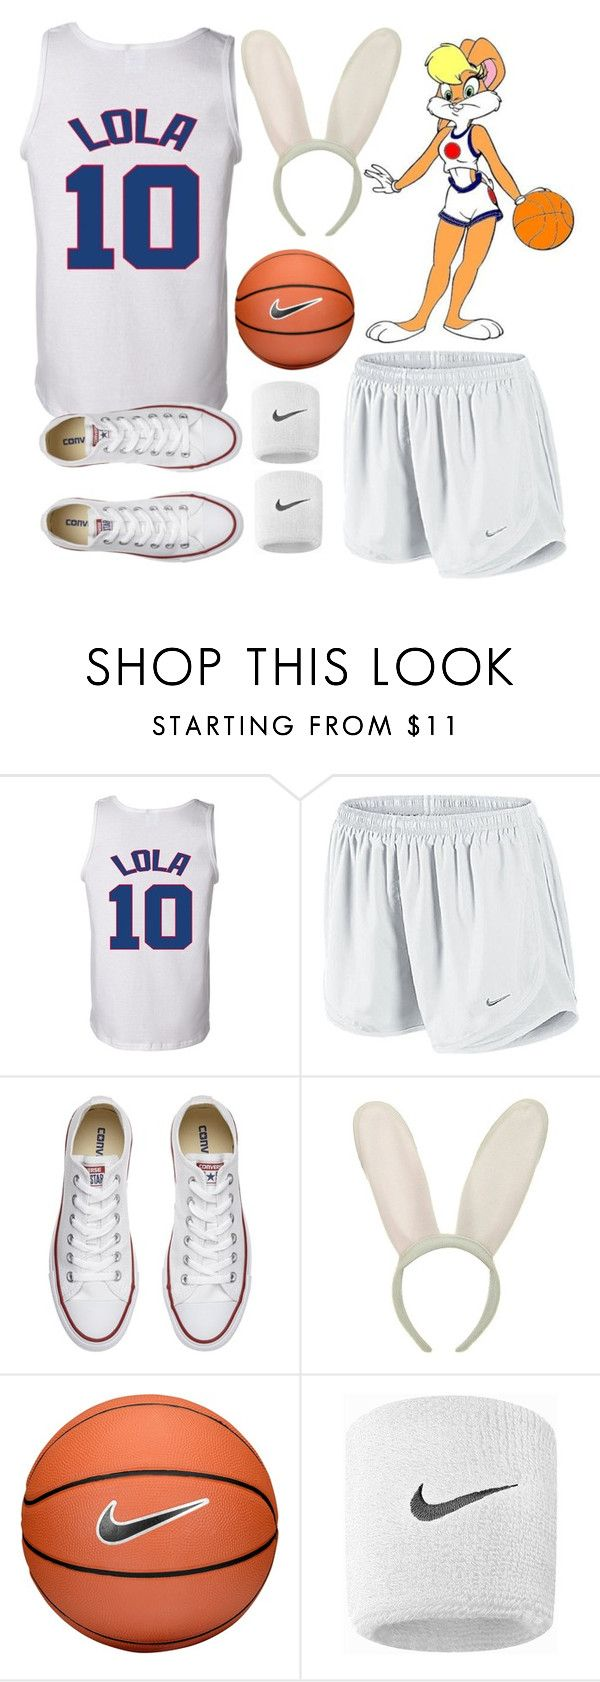 """Lola Bunny Halloween Costume"" by kirrky ❤ liked on Polyvore featuring NIKE, Converse, Halloween, lolabunny and spacejam"